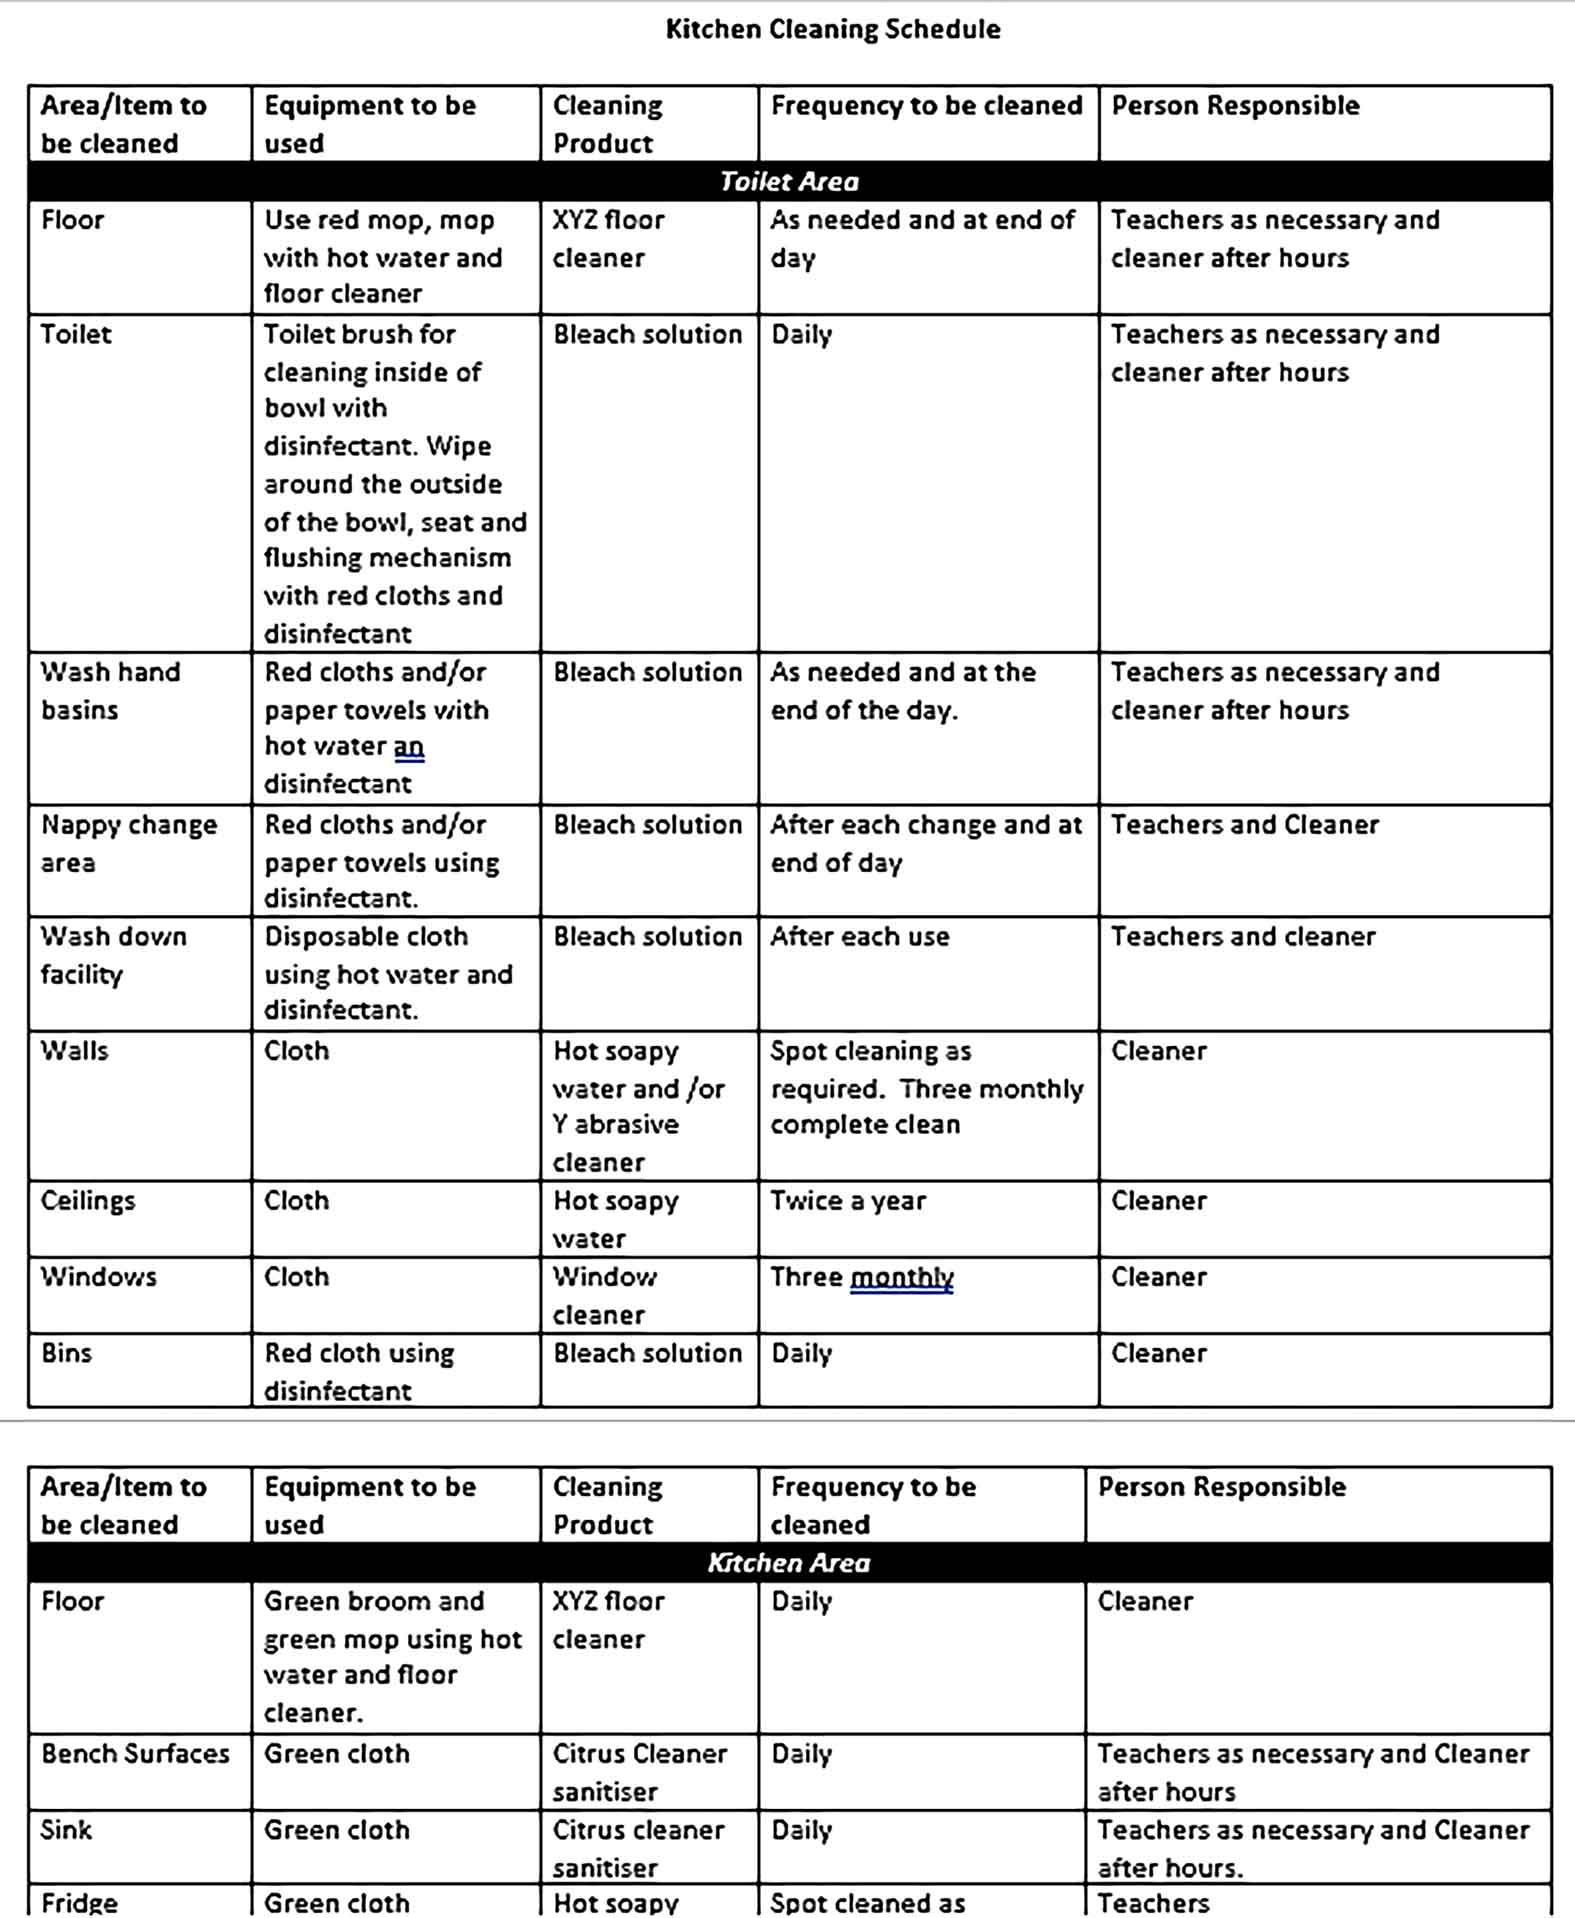 Template Doc Format Kitchen Cleaning Schedule 1 Sample 001